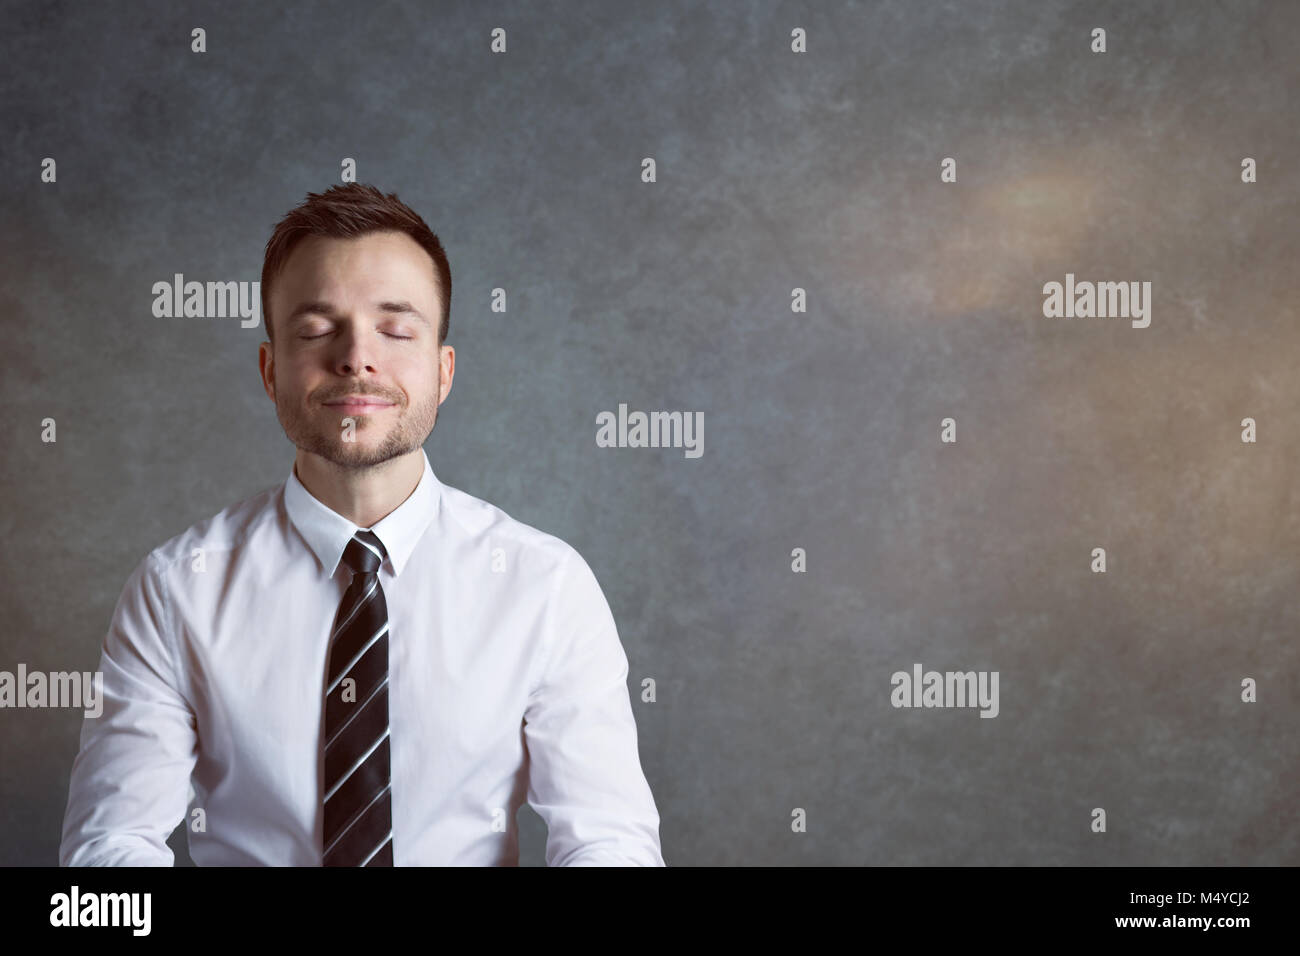 Relaxed and balanced businessman with a smile - Stock Image